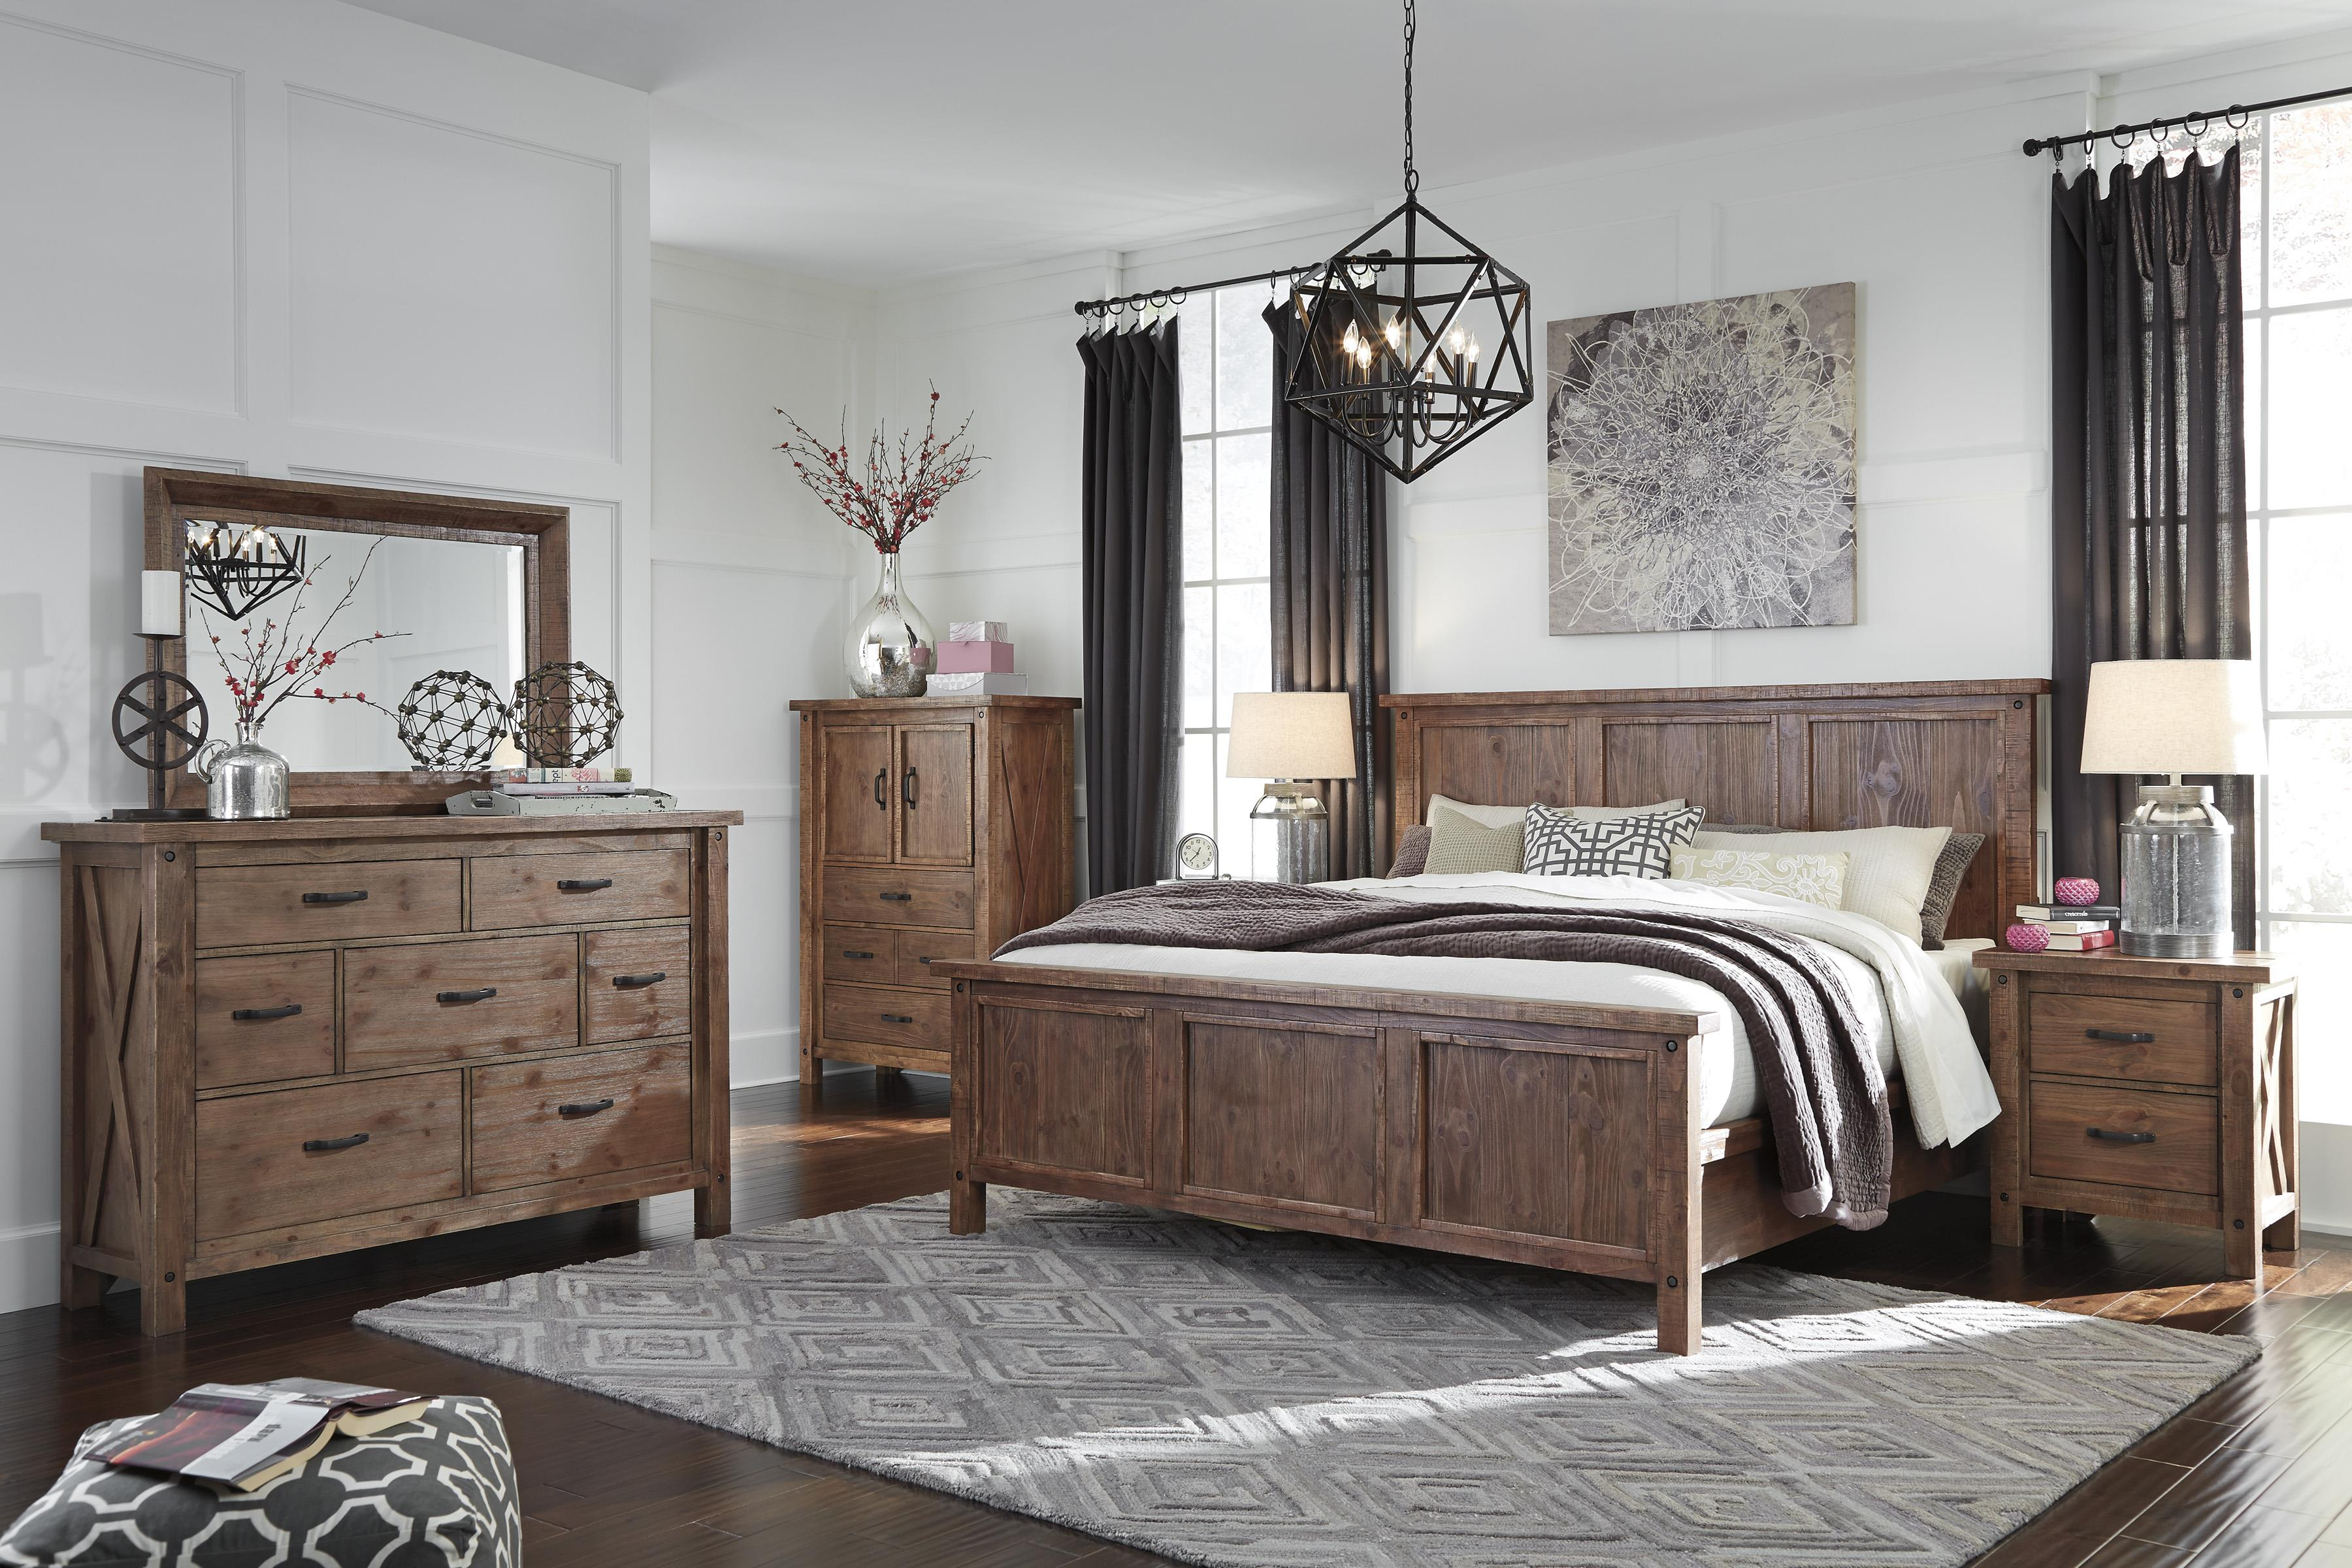 Signature Design by Ashley Tamilo Queen Bedroom Group - Item Number: B714 Q Bedroom Group 1